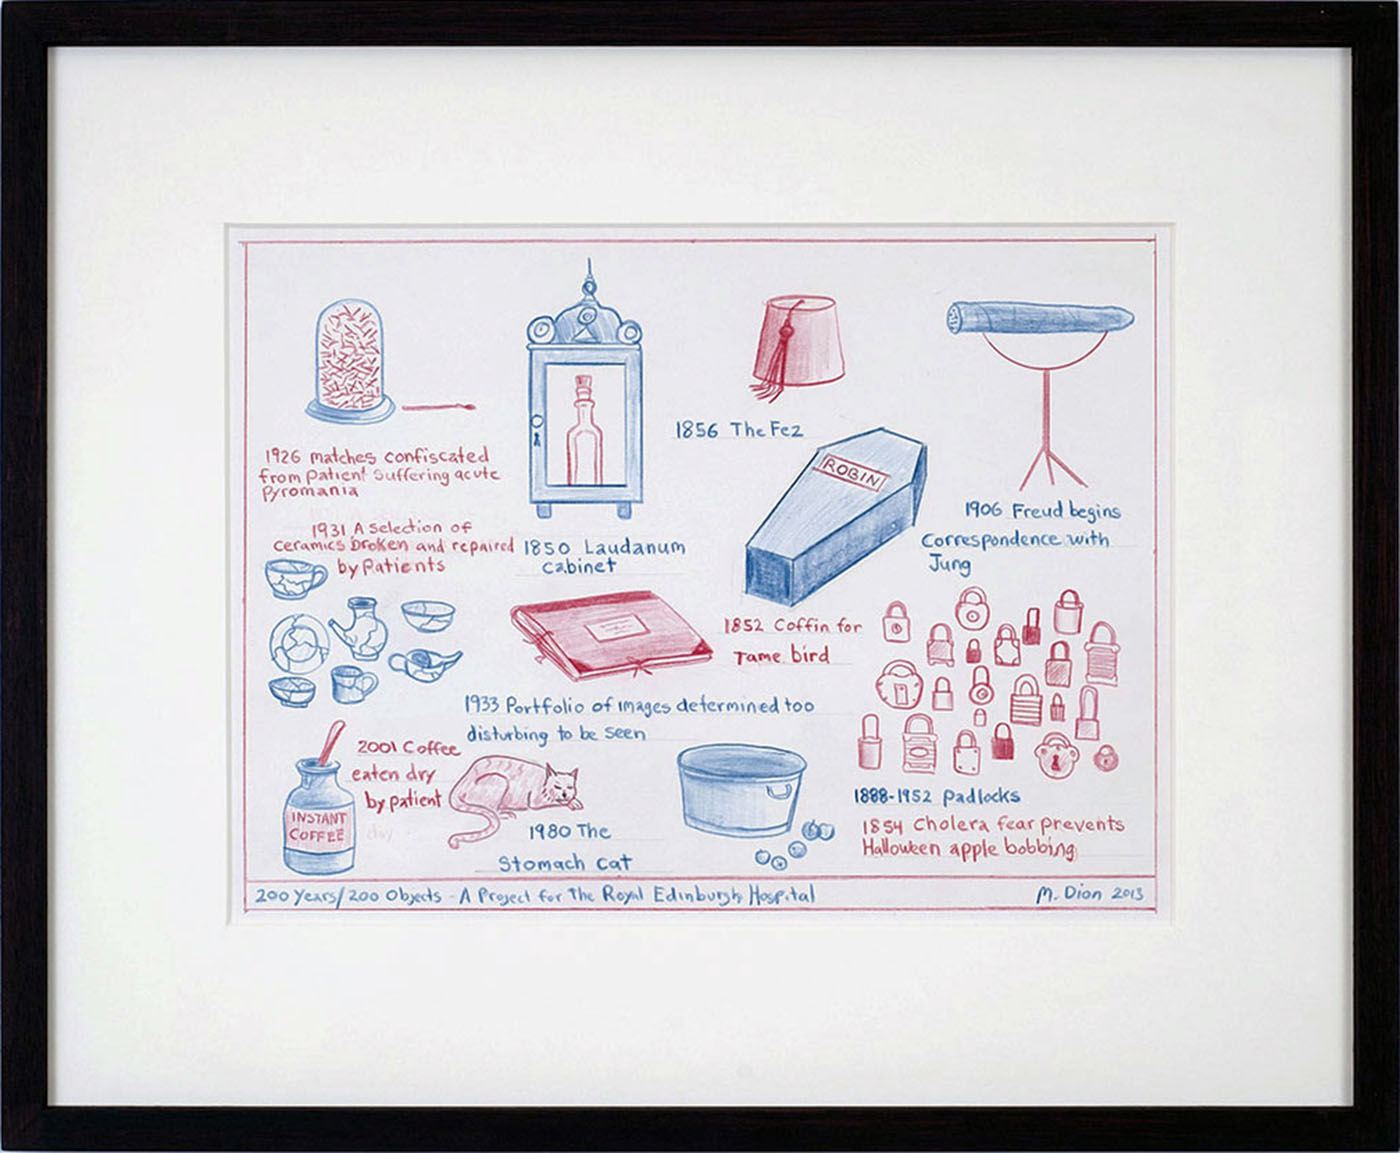 Mark Dion - 200 Years / 200 Objects : A project for the Royal Edinburgh Hospital, 2013